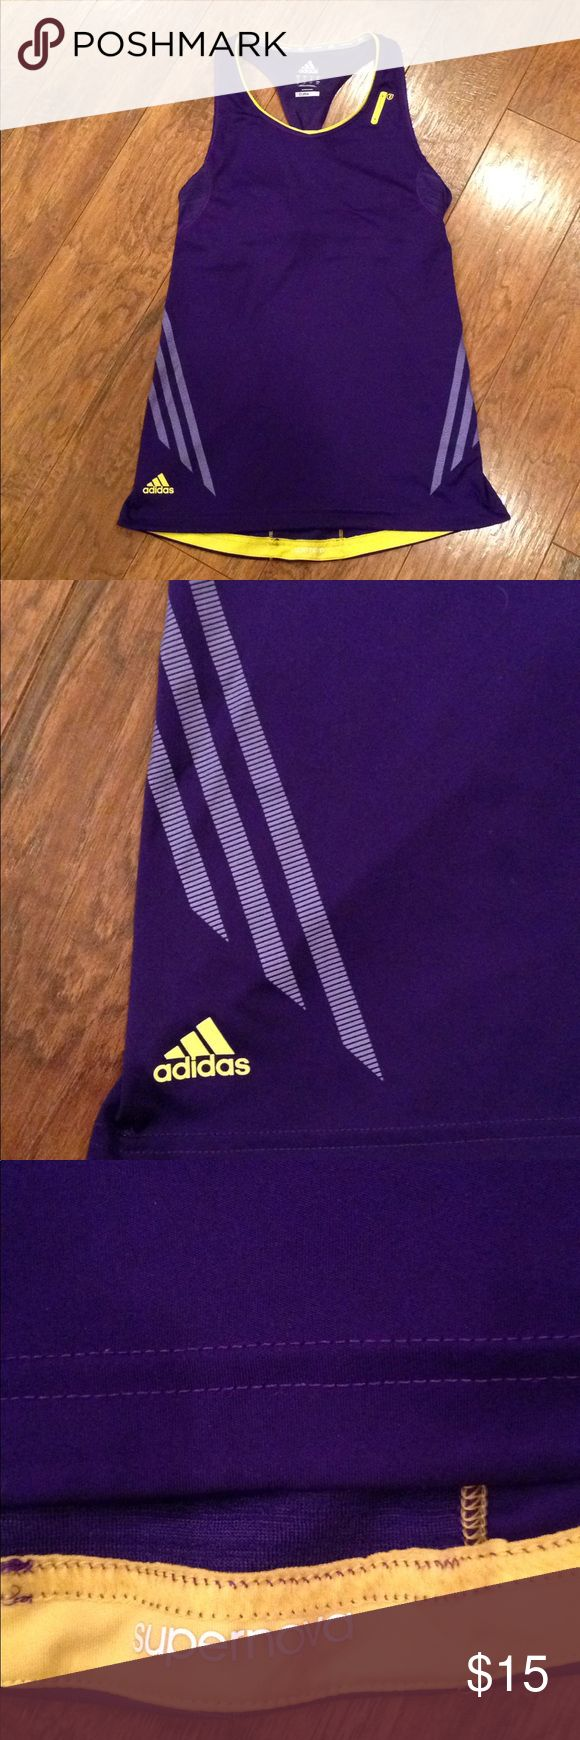 Adidas Supernova Support Tank Purple & Yellow S •Women's Adidas Supernova Support Tank Size Small.  In Excellent Condition.                                            •Colors: Vivid Purple and Vivid Yellow.        •This Adidas Supernova Support Tank top is built with ventilation channels that cool you off while you run, pulling cool air in and drawing heat and sweat away. The running tank top includes a handy media pocket on the strap and reflective details. adidas Tops Tank Tops